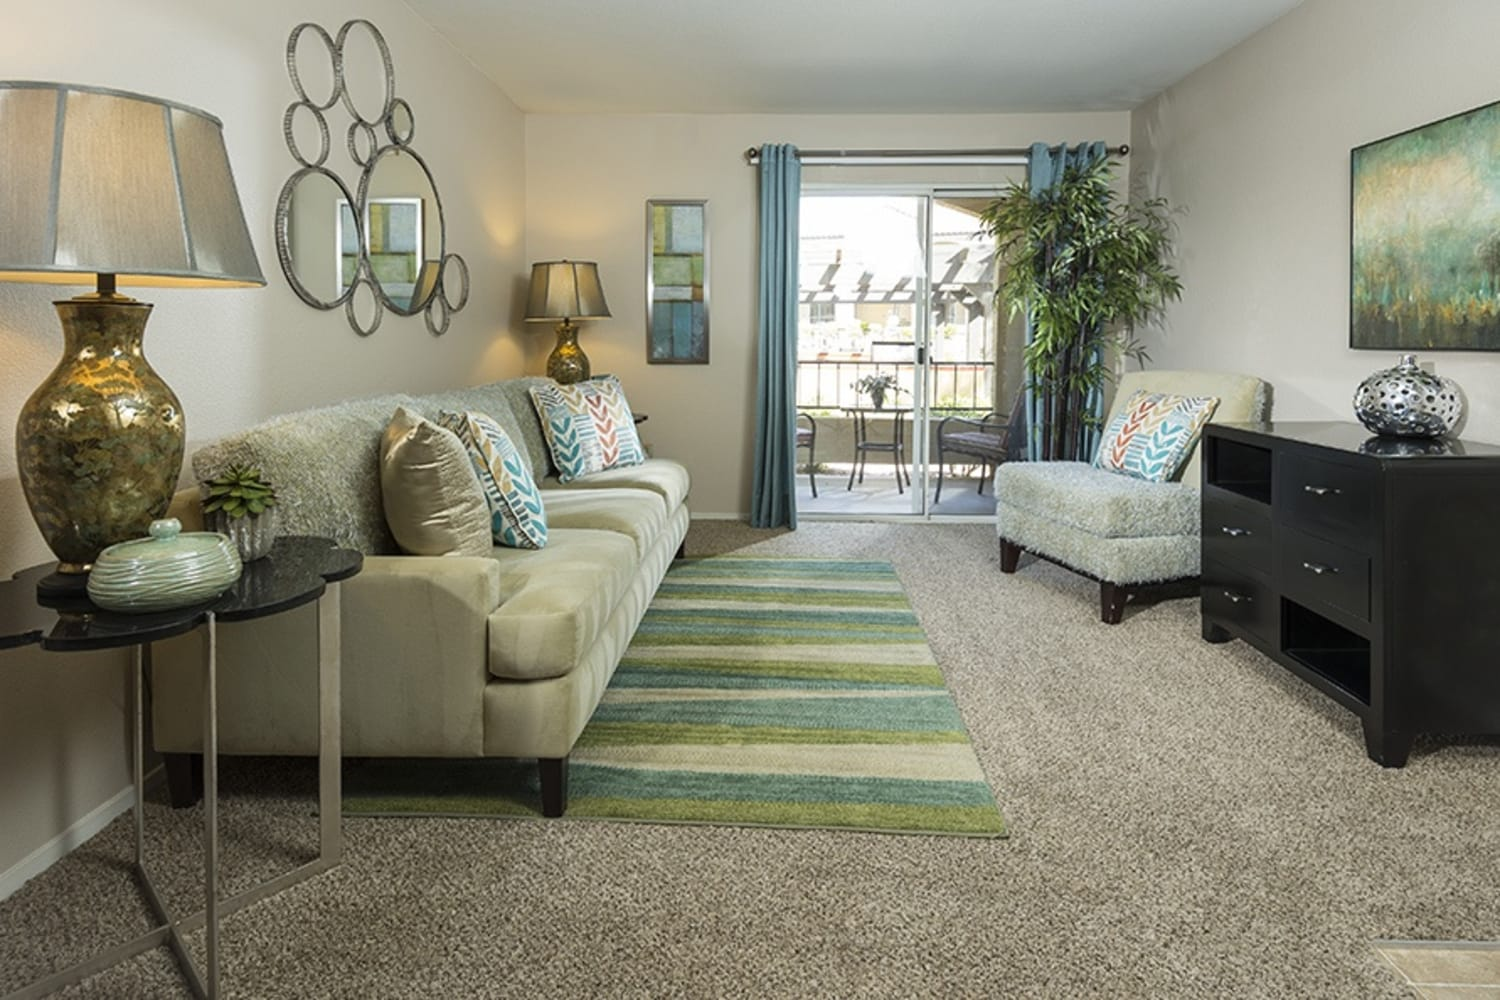 Plush carpeted living room at Rancho Destino Apartments in Las Vegas, Nevada